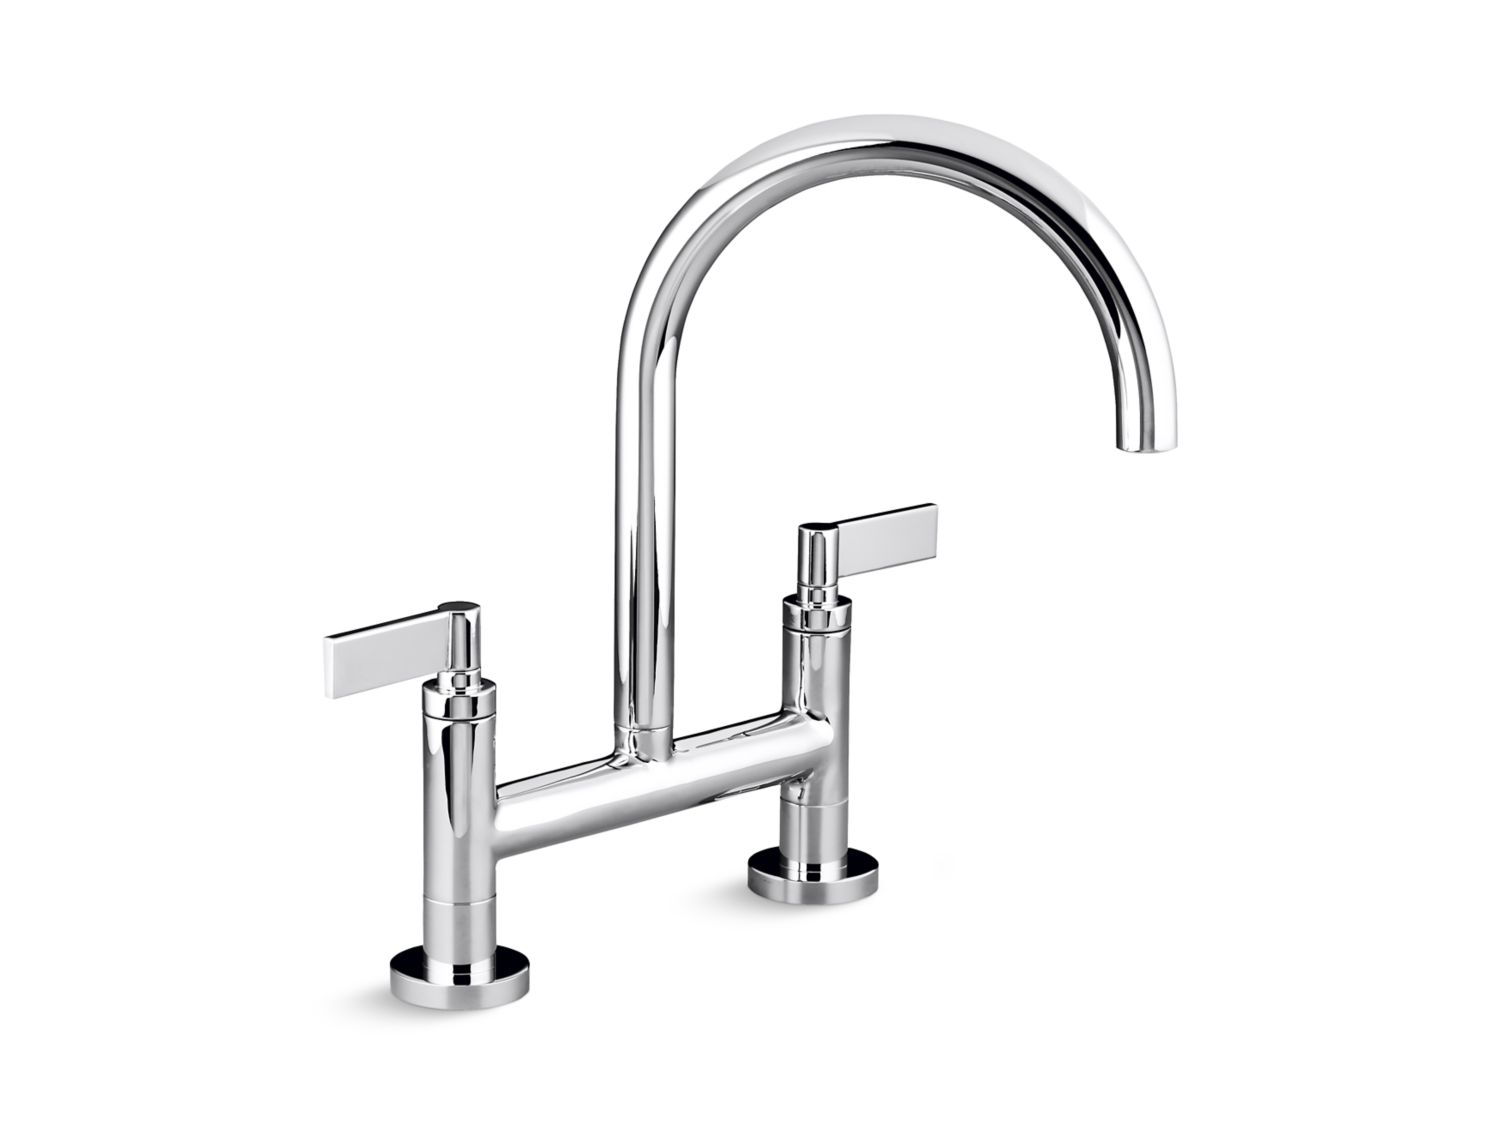 One Deck-Mounted Bridge Kitchen Faucet, Lever Handles | P25202-LV | Kitchen  Faucets | Kallista